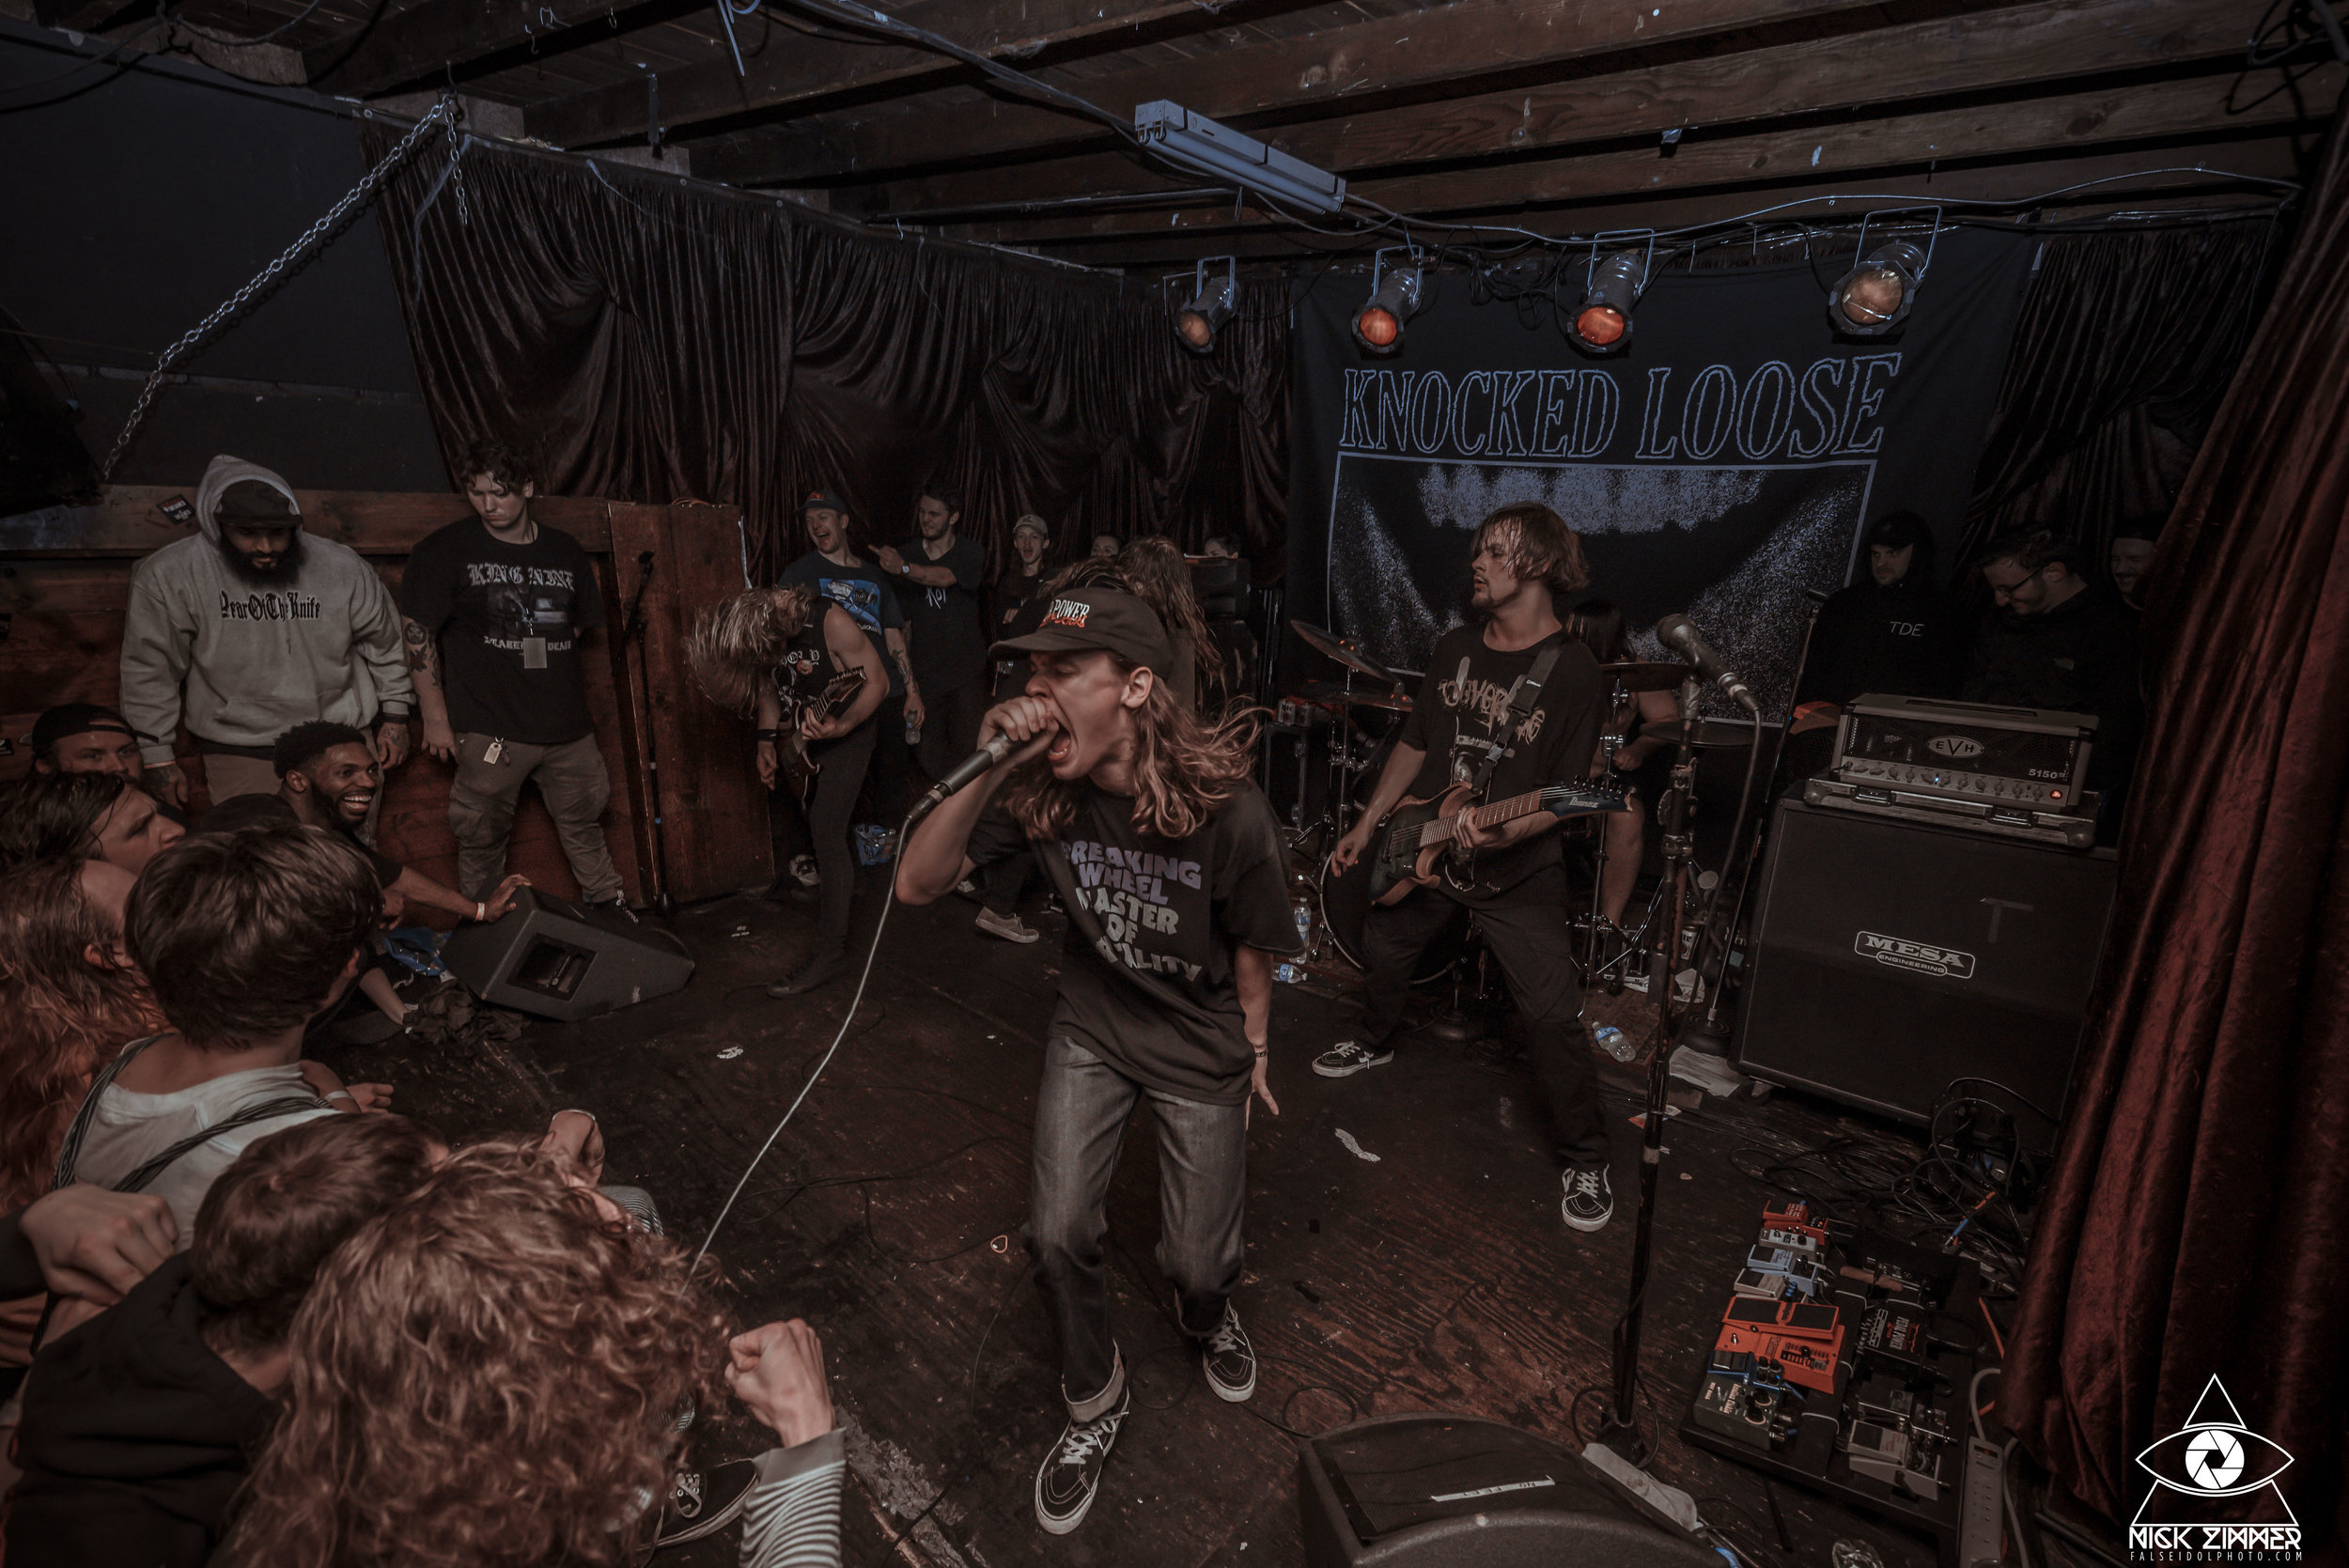 KnockedLoose.TheEnd.NickZimmer (11 of 24).jpg